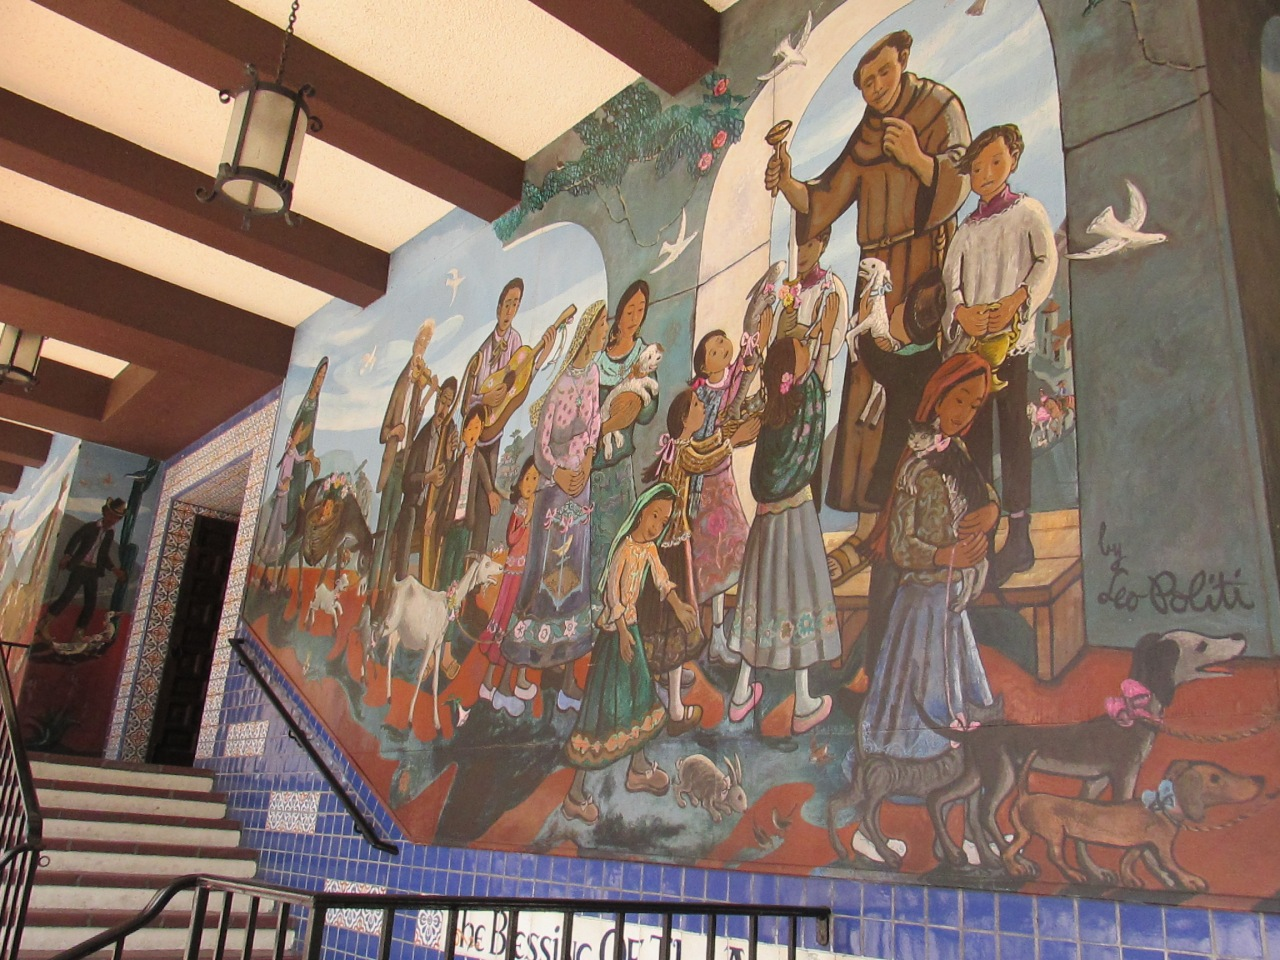 A mural depicting the Blessing of the Animals, a Spanish tradition during the Easter season.  It's part of the historic Biscailuz Building.